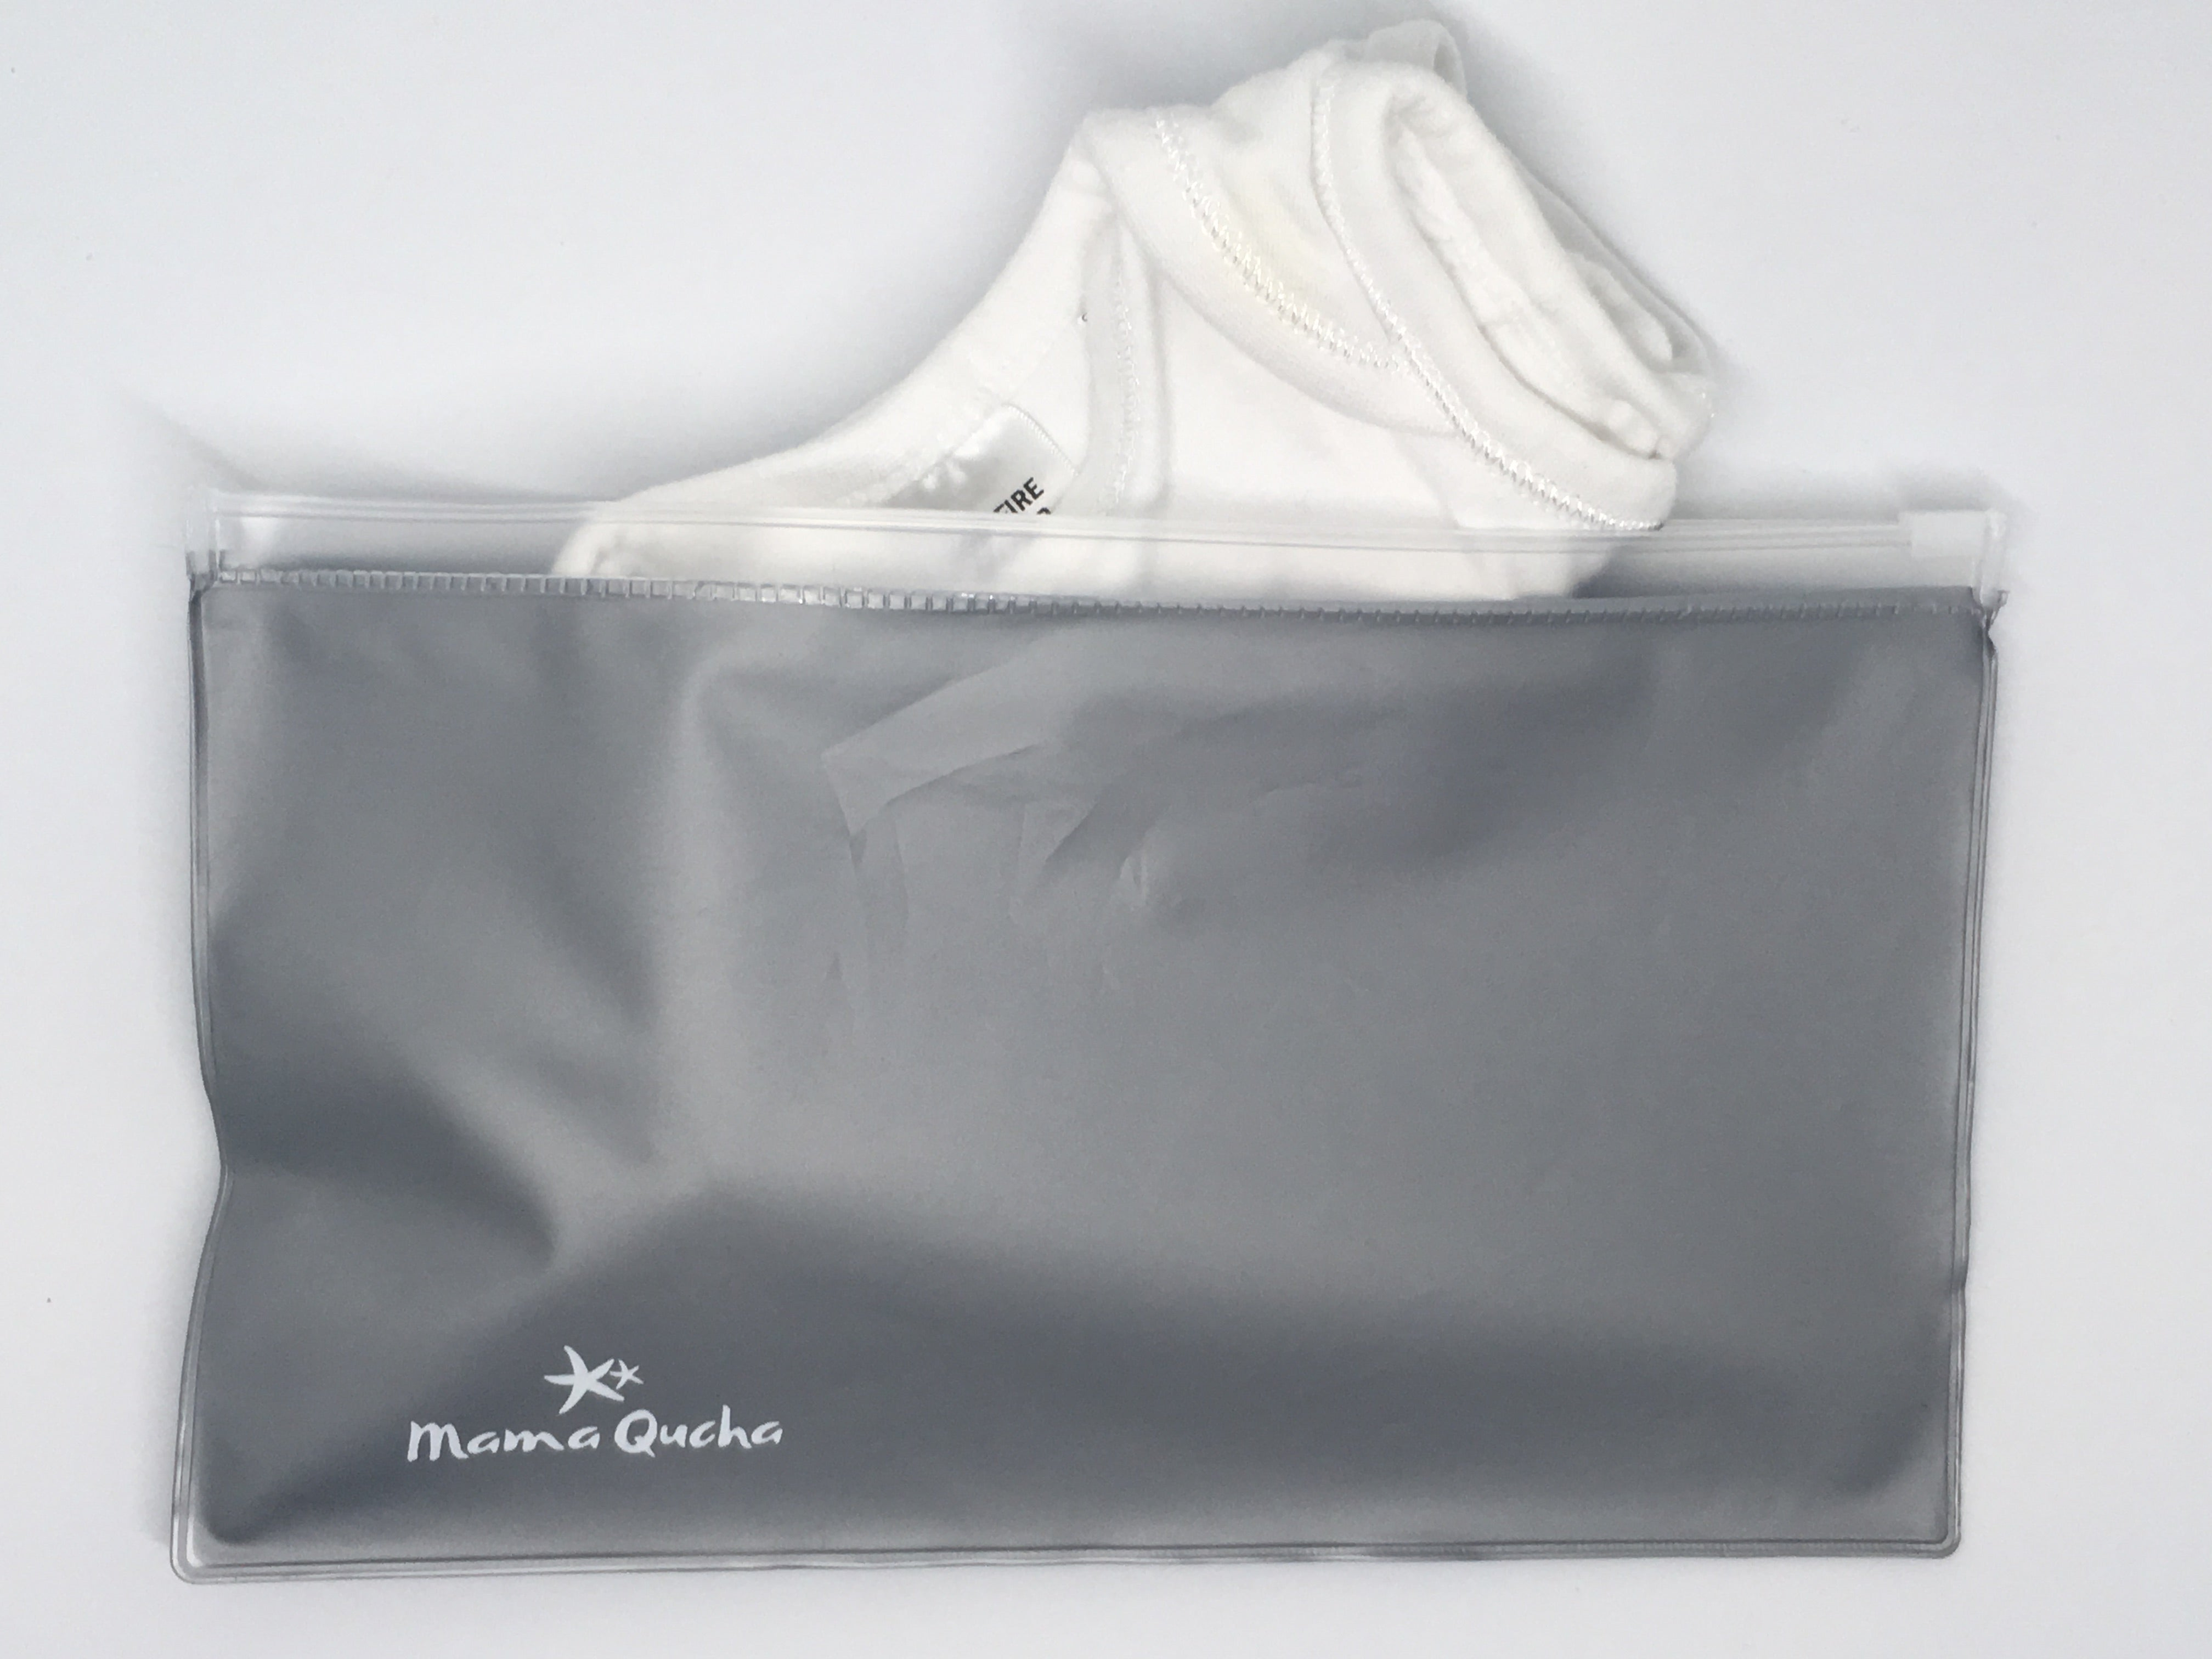 The Mama Qucha small zip lock wet bag is large enough to hold a baby body suit